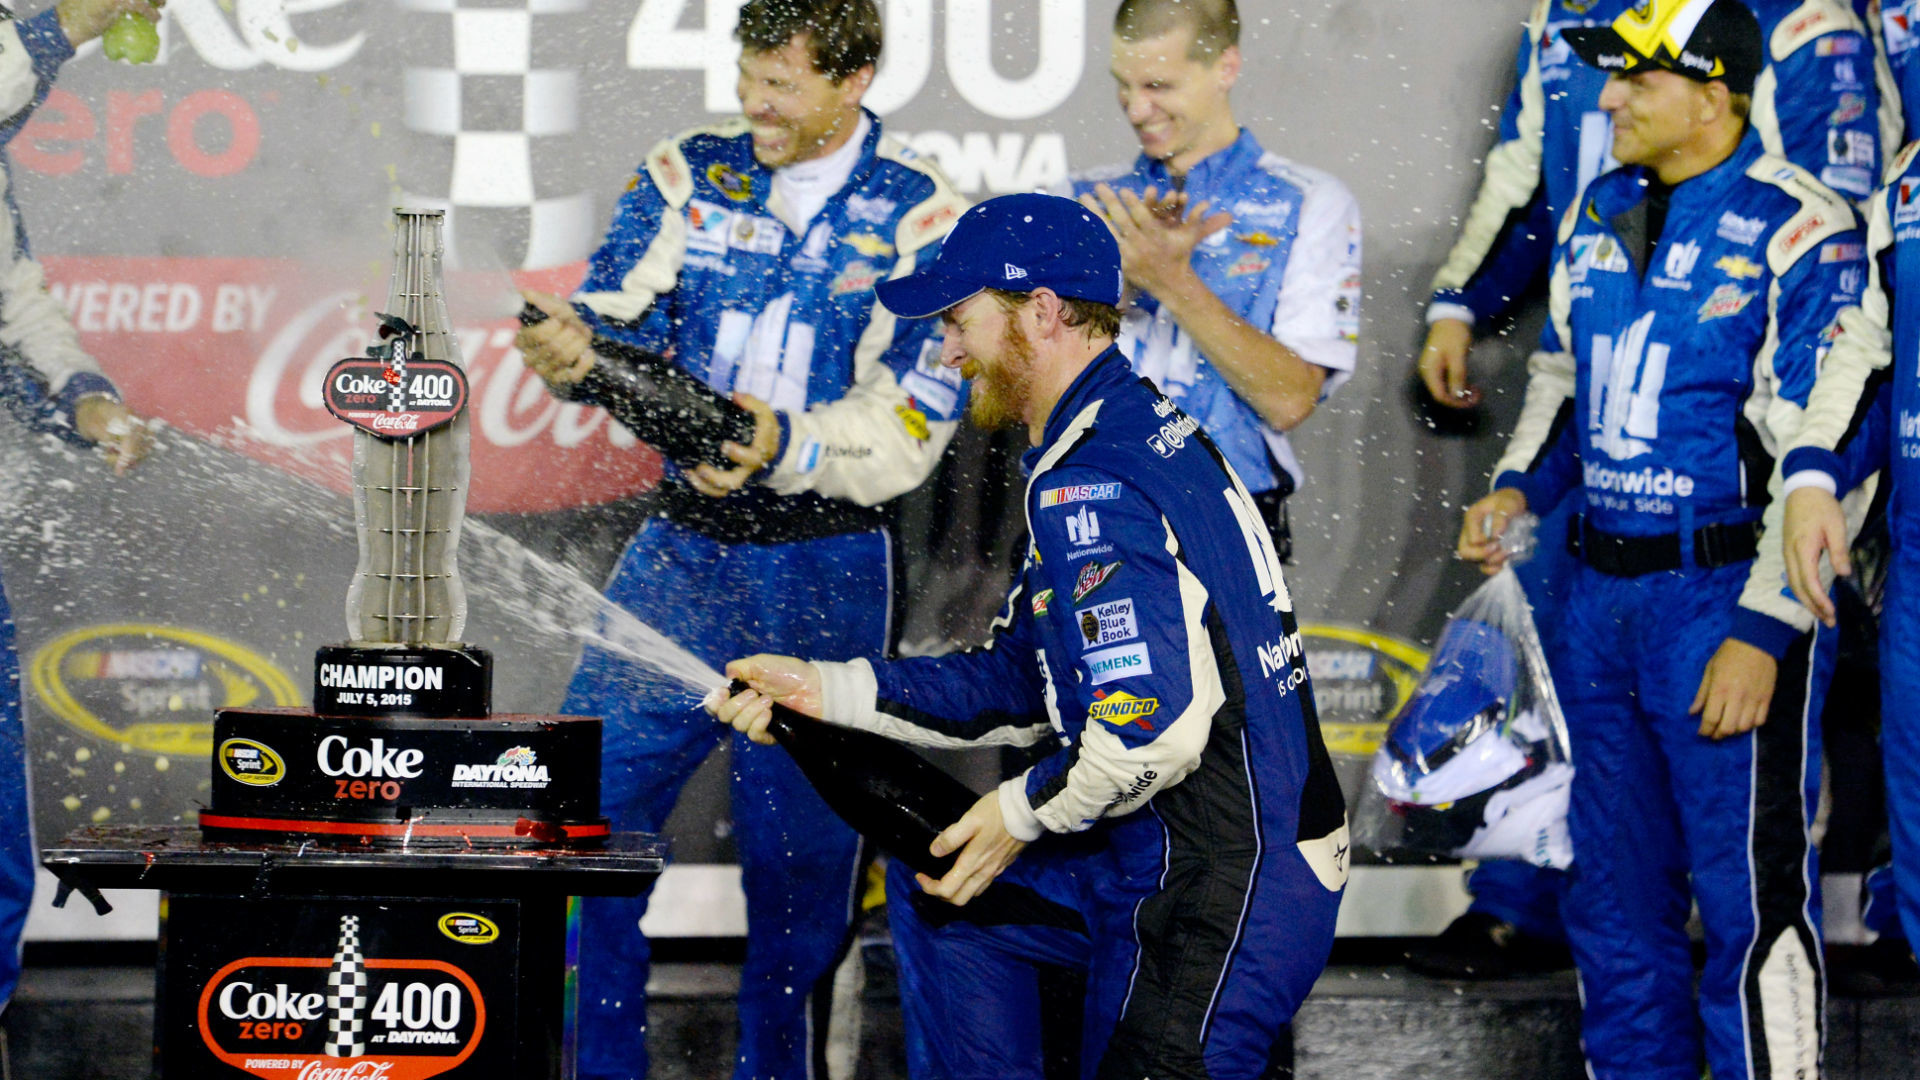 Dale Earnhardt Jr. wins second race of season in wild finish at Daytona |  NASCAR | Sporting News